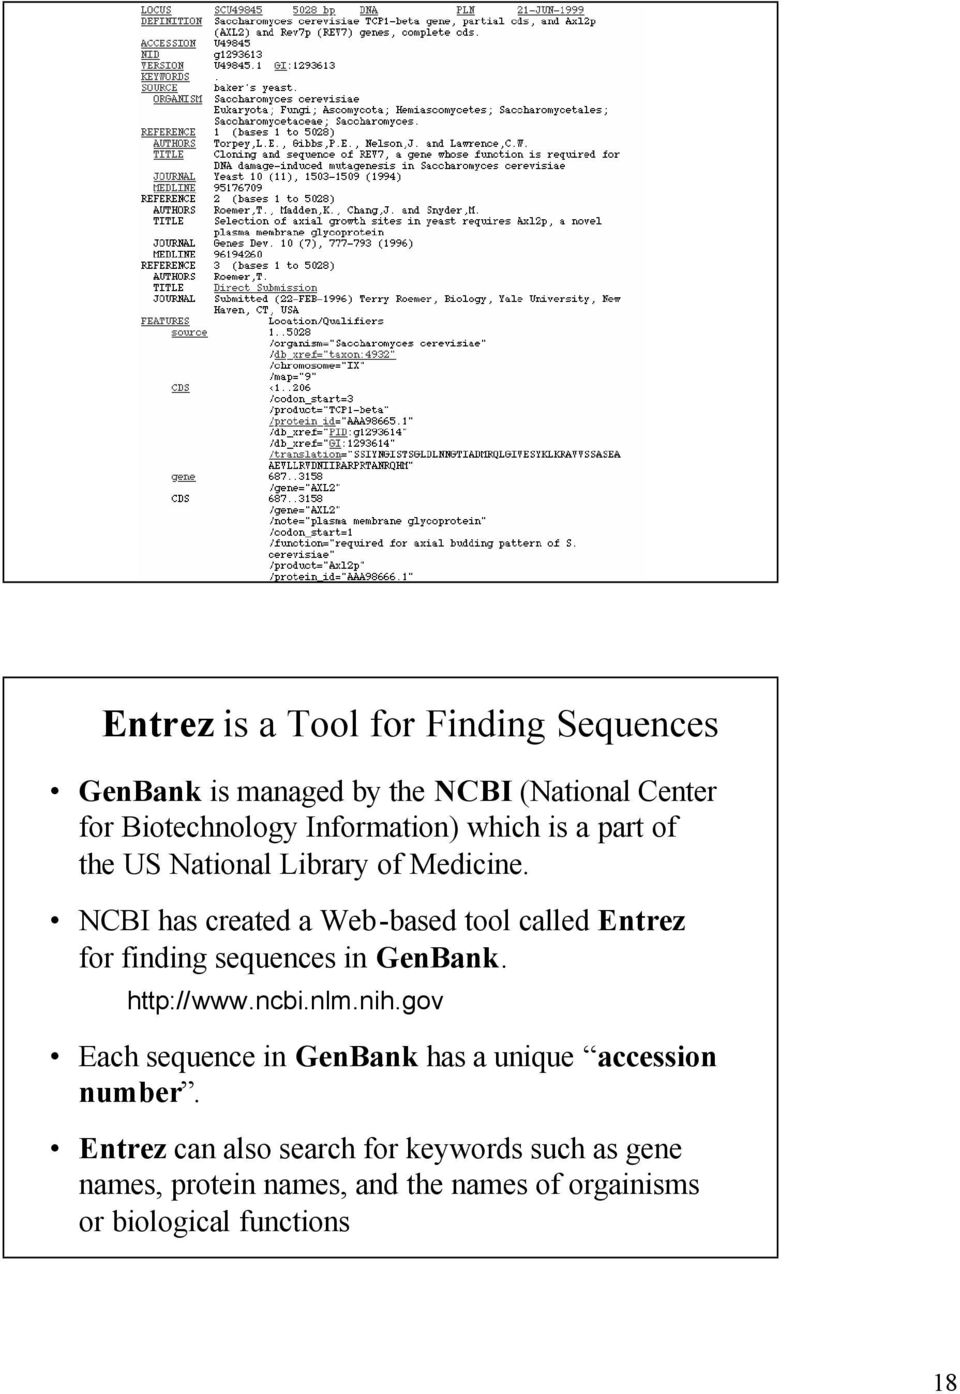 NCBI has created a Web-based tool called Entrez for finding sequences in GenBank. http://www.ncbi.nlm.nih.